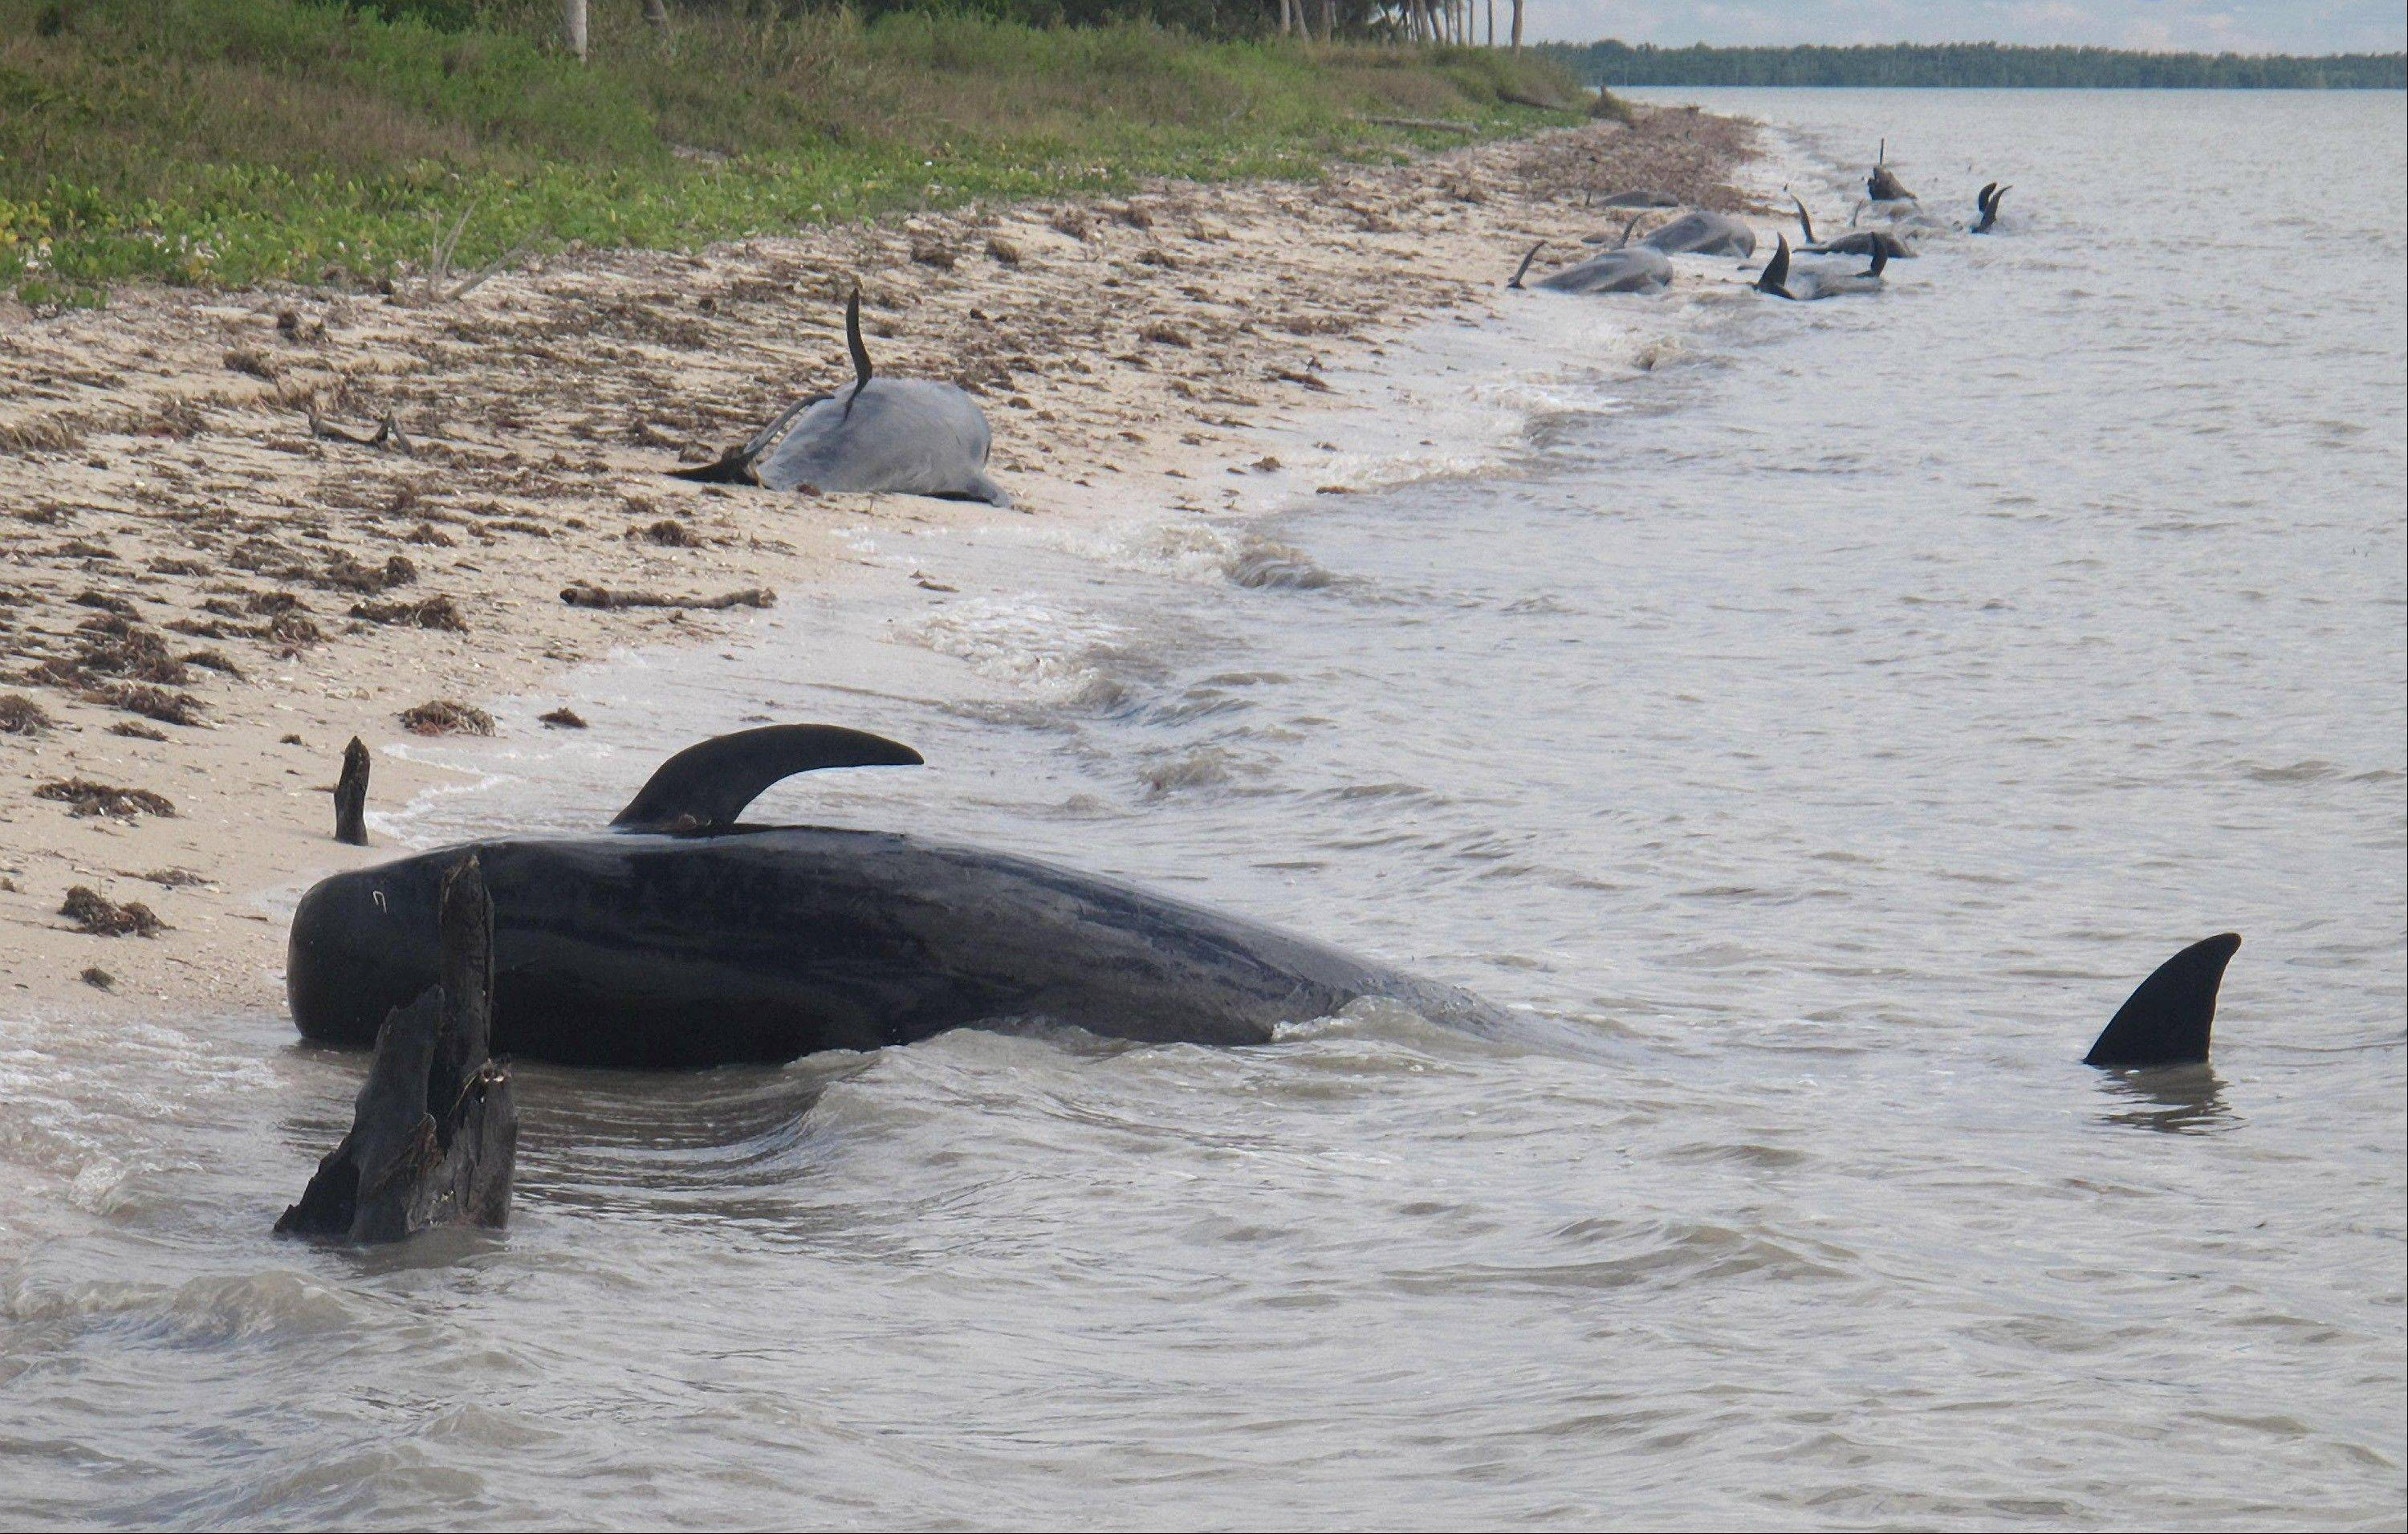 Pilot whales are stranded on a beach in a remote area of the western portion of Everglades National Park, Fla. Federal officials said some whales have died. The marine mammals are known to normally inhabit deep water.